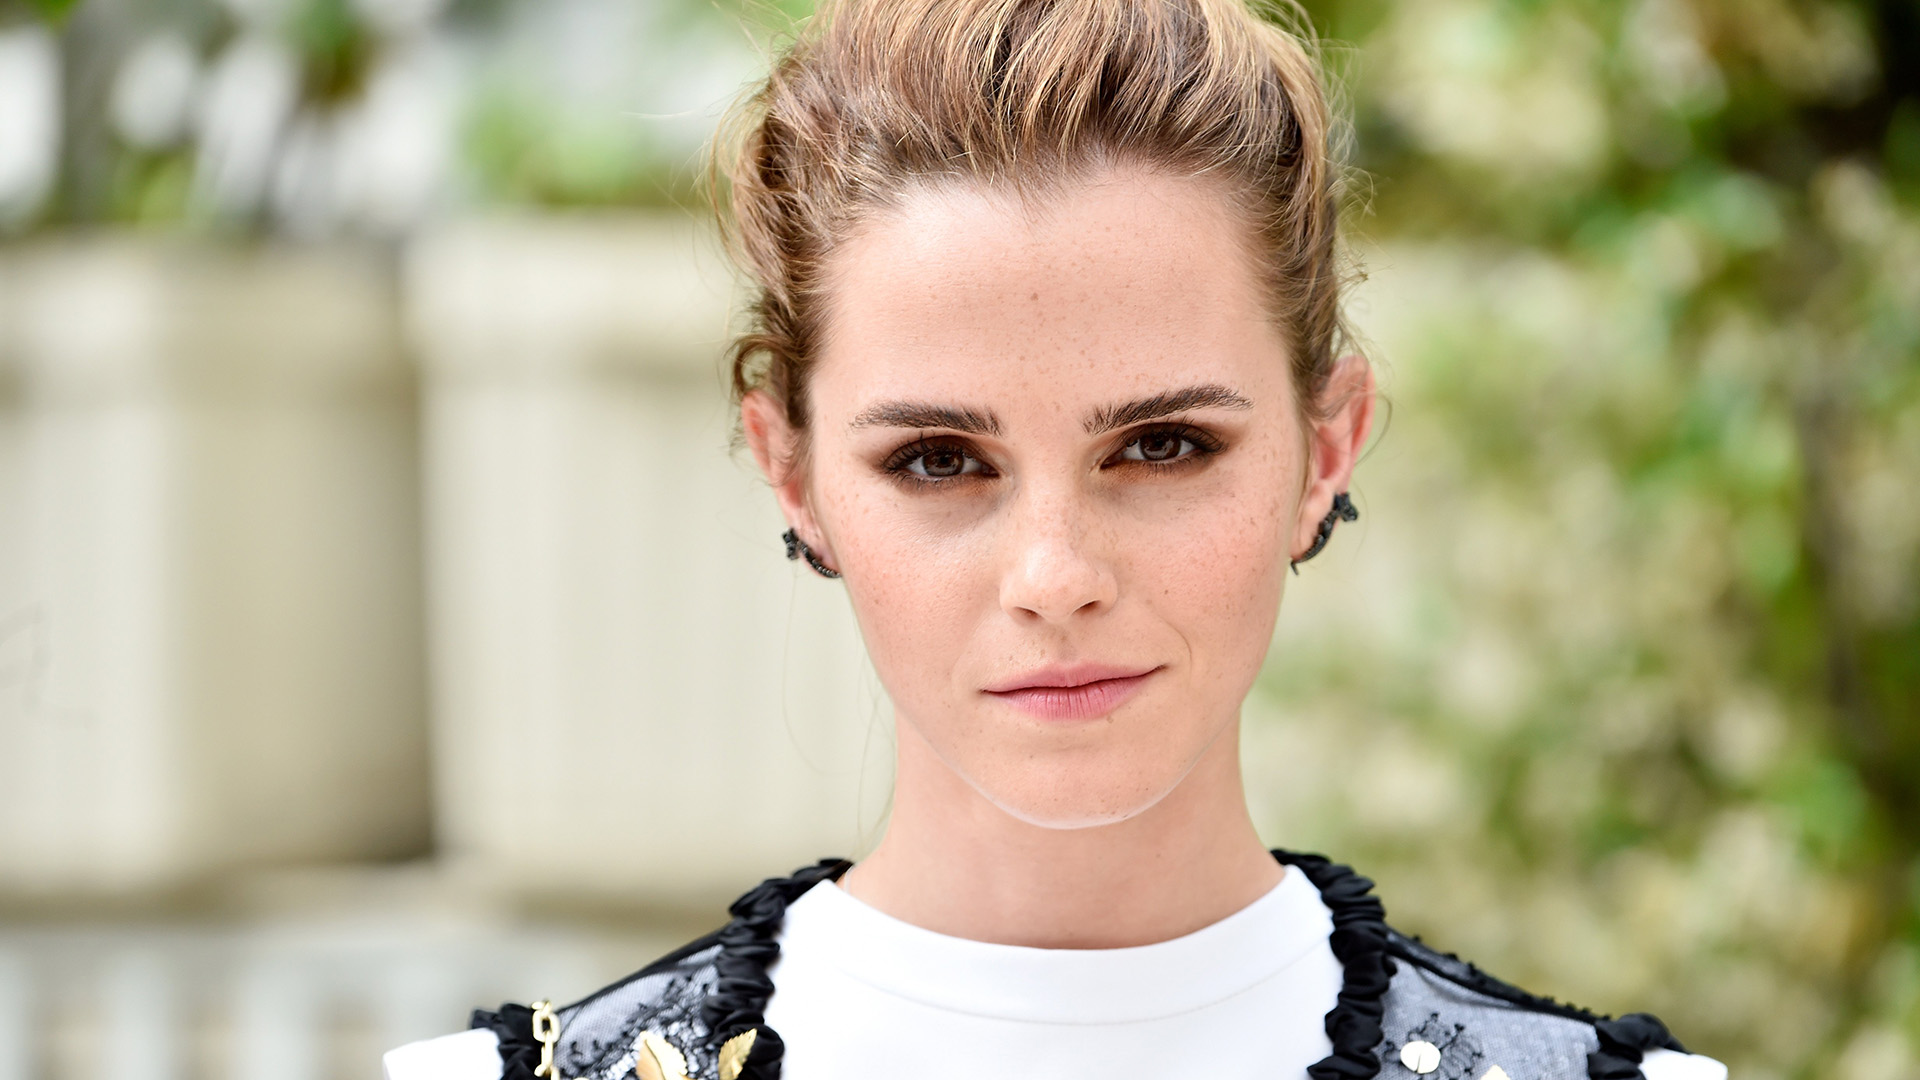 emma watson debuts new bangs in instagram photo